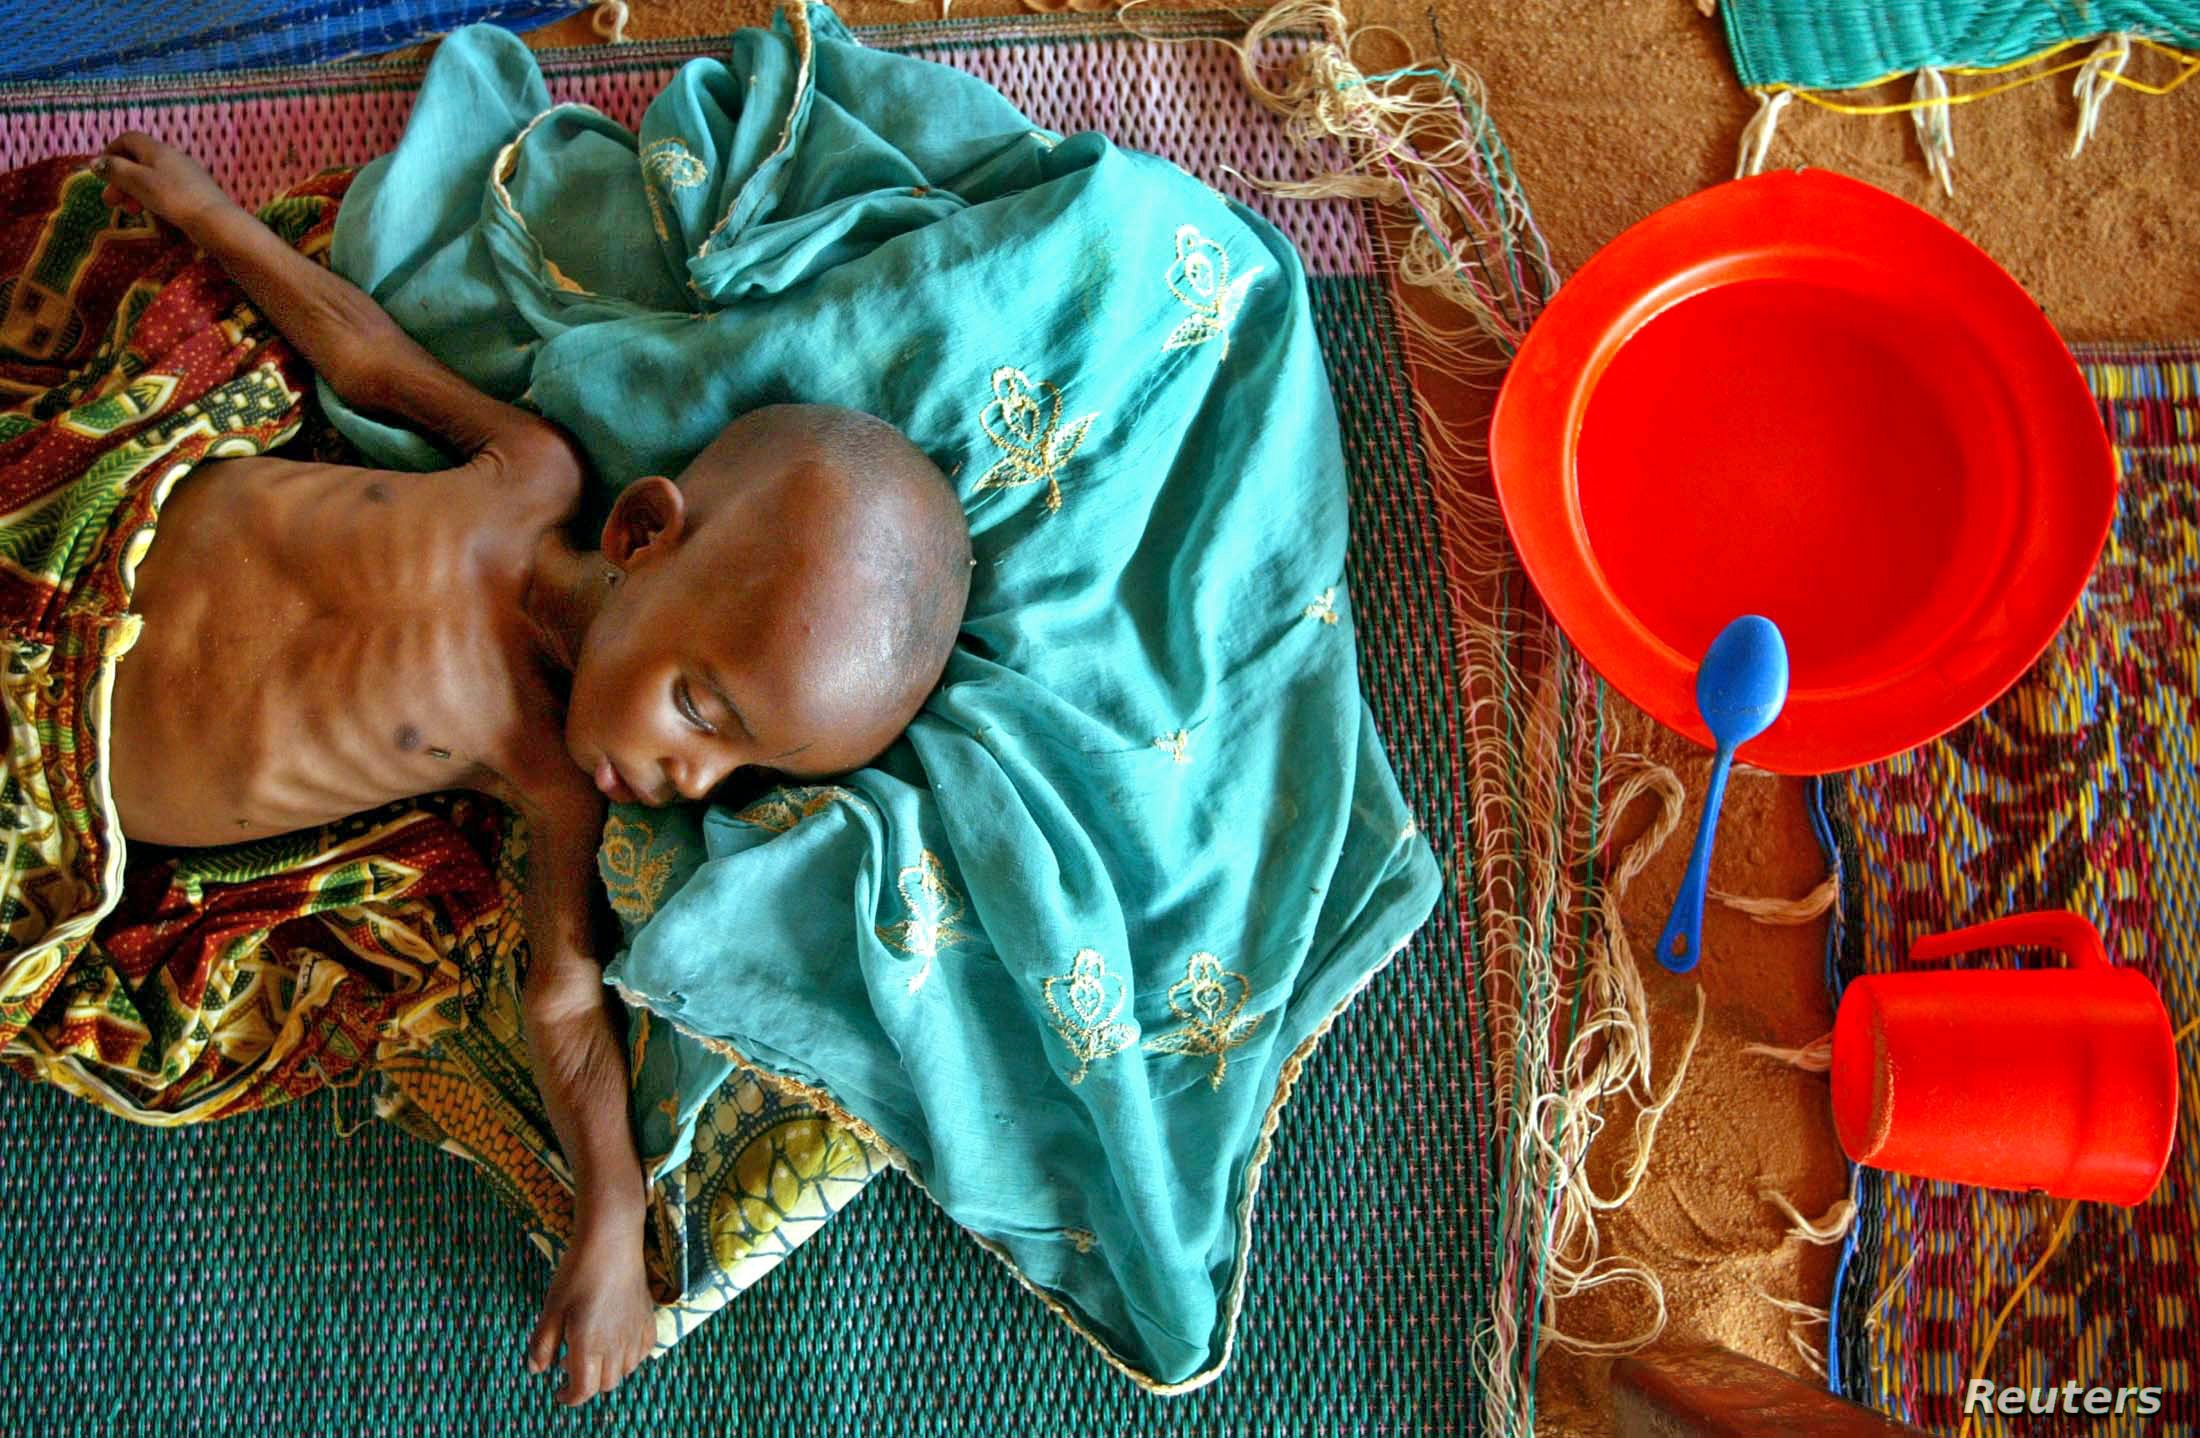 UNICEF: More Than 2 Million in Niger Face Humanitarian Crisis